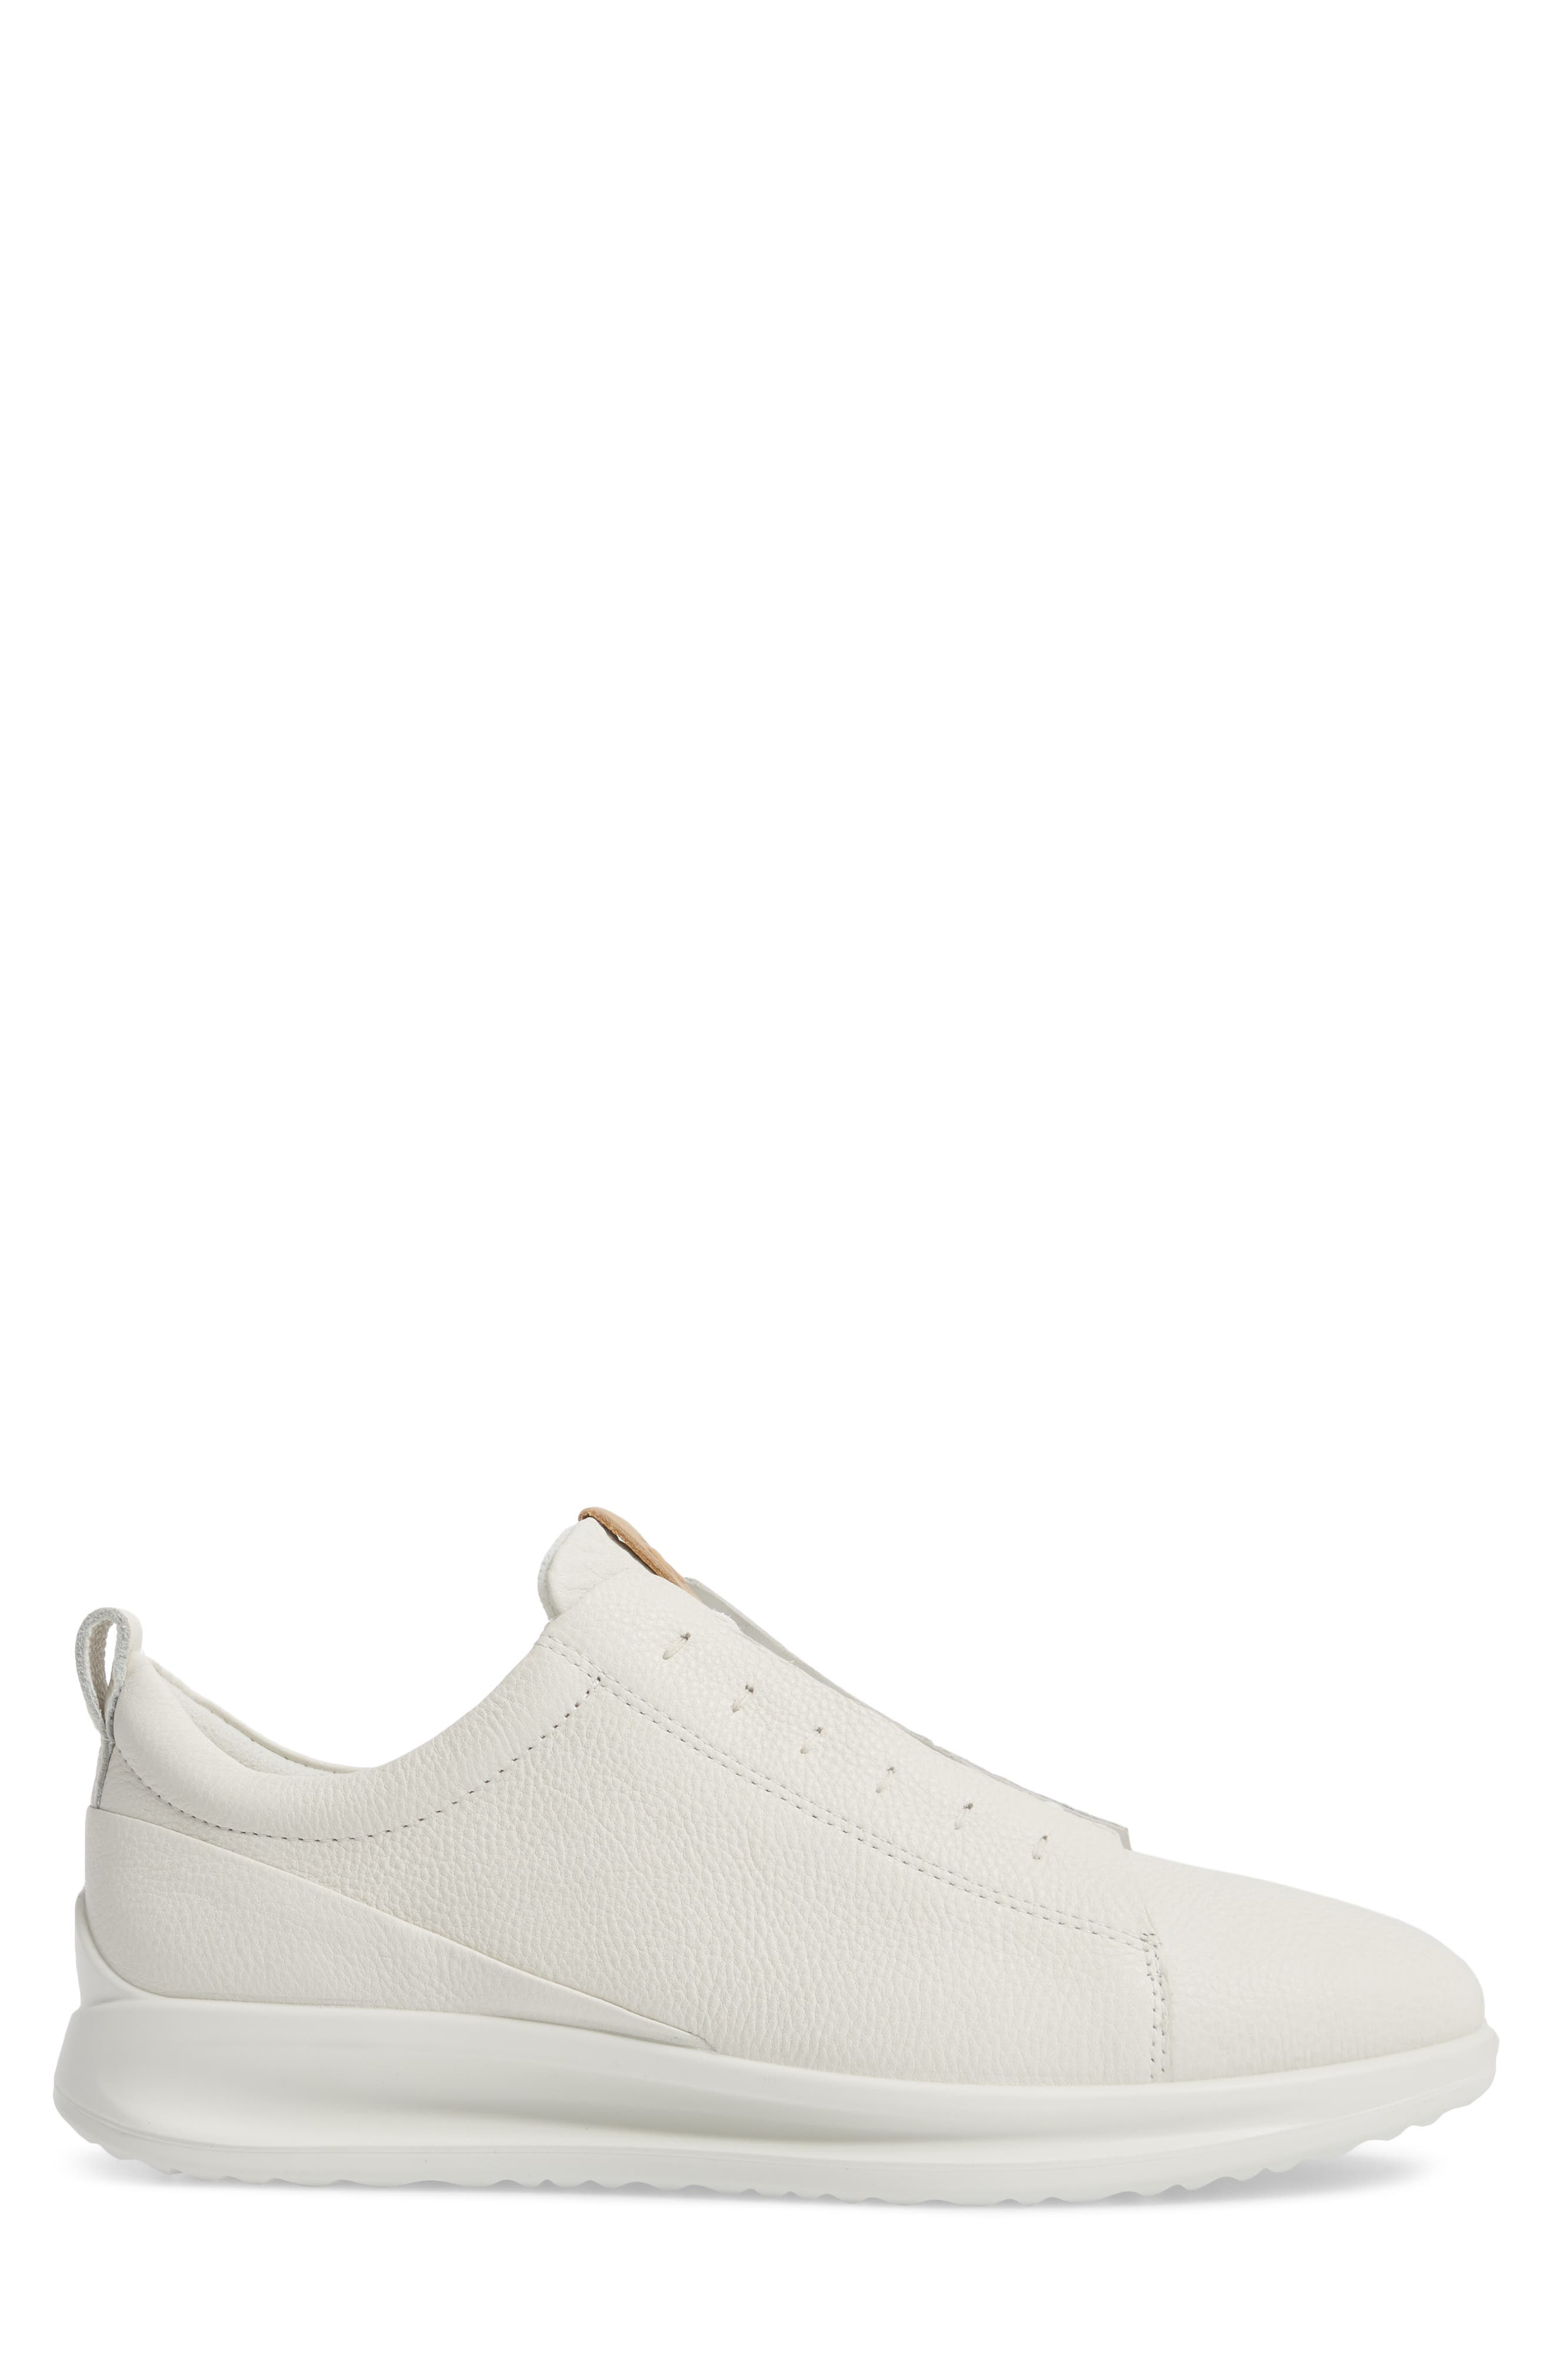 Aquet Low Top Sneaker,                             Alternate thumbnail 3, color,                             100